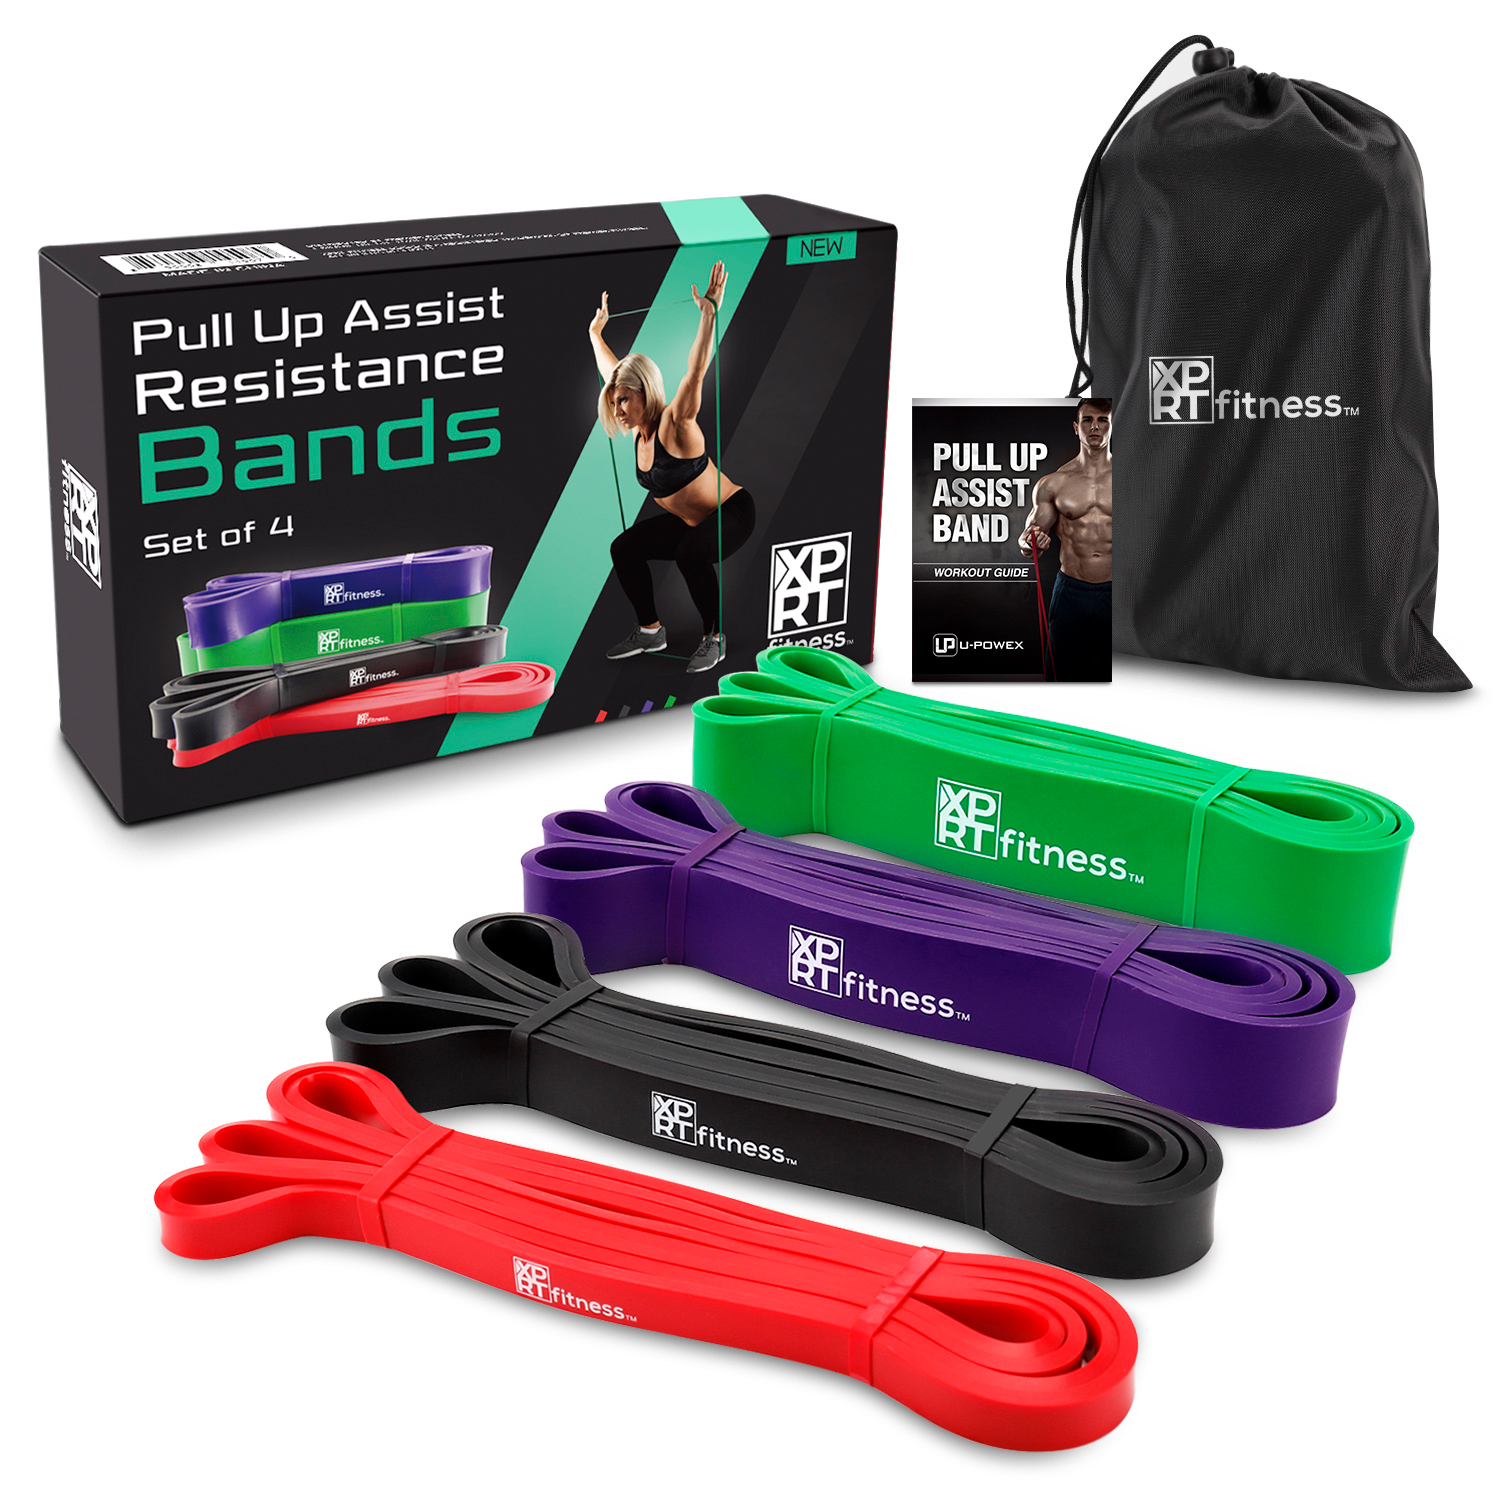 XPRT Fitness Resistance Bands Pull Up Assist Bands Stretching Powerlifting Set of 4